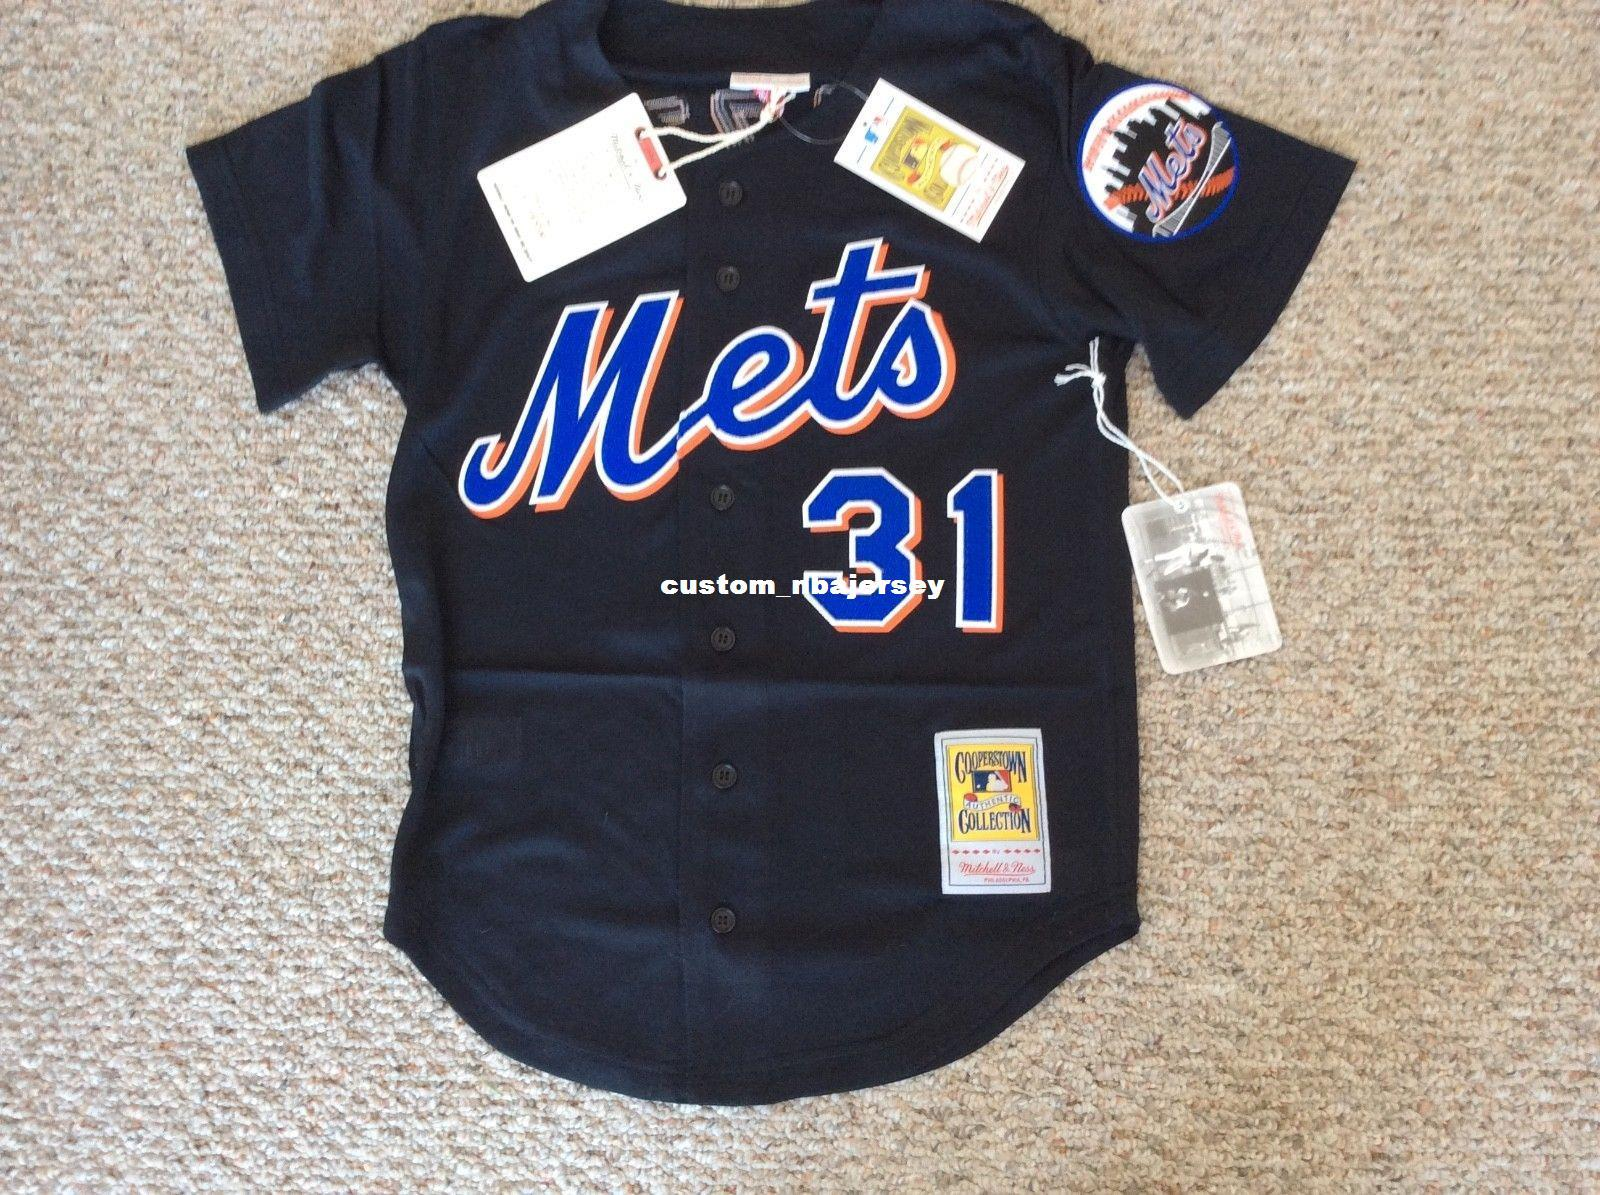 829d3898c 2019 Cheap Custom Piazza BP Jersey 2000 Stitched Customize Any Number Name  MEN WOMEN YOUTH XS 5XL From Custom nbajersey